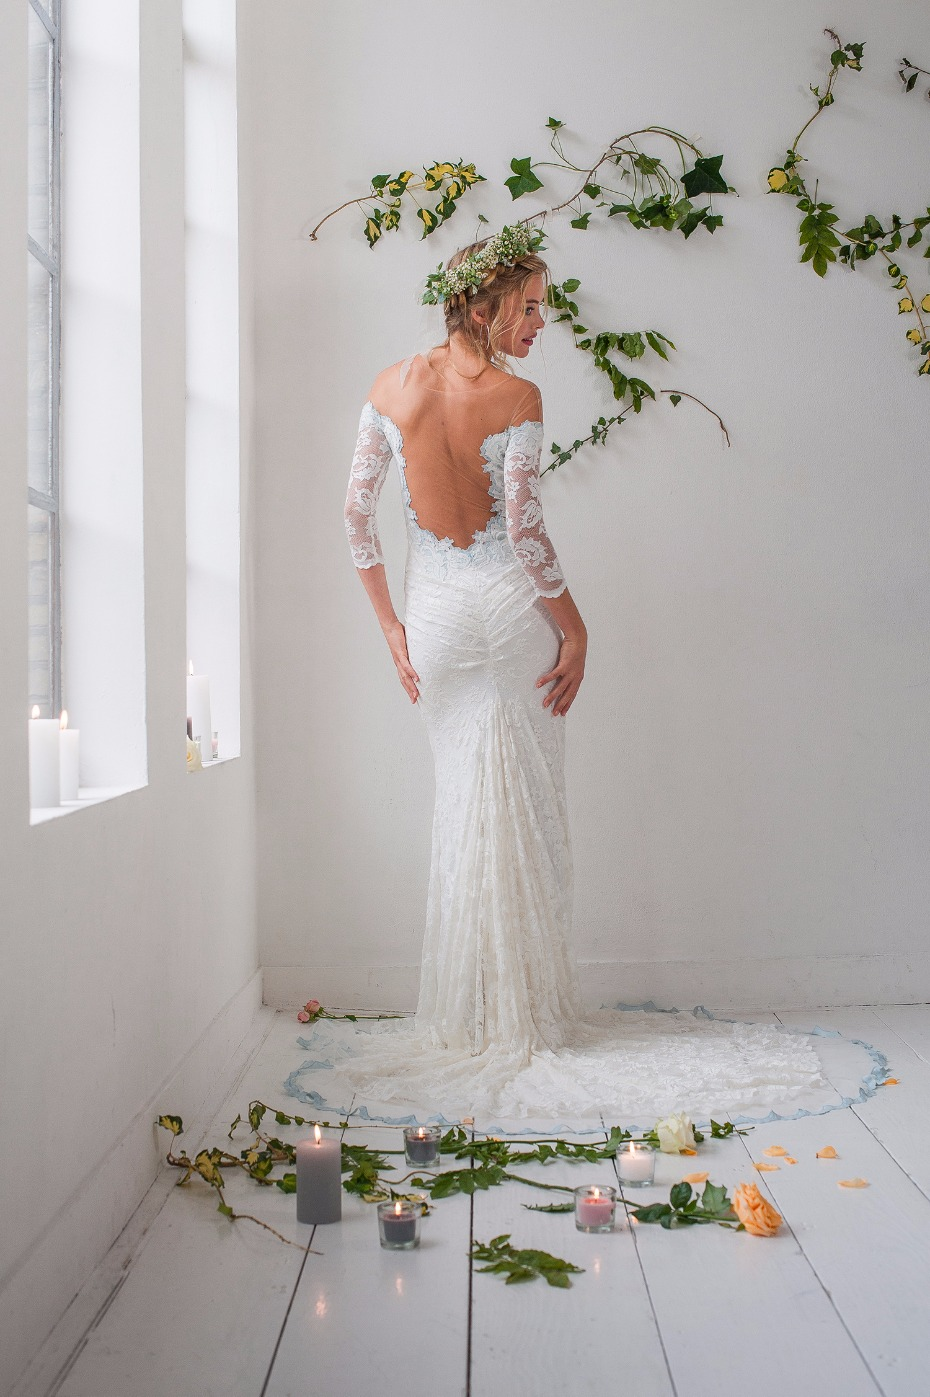 This lace gown will hug all your curves from Olvi's